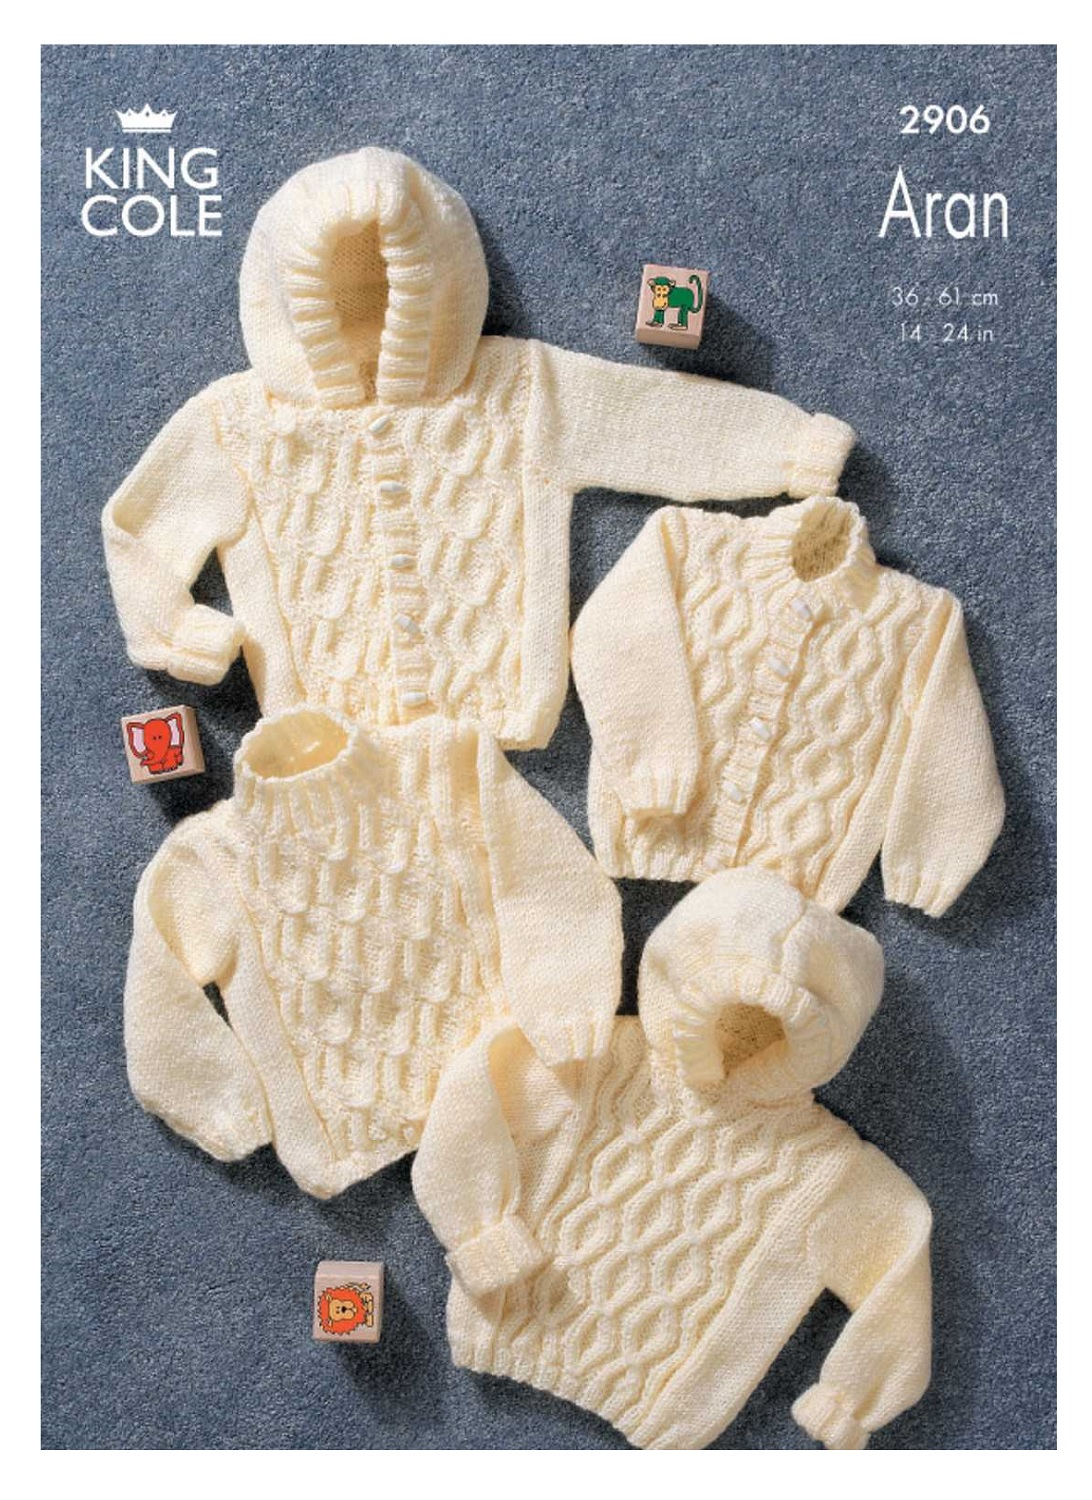 King Cole Aran Knitting Pattern Baby Cable Knit Long Sleeve Sweater Jacket 29...